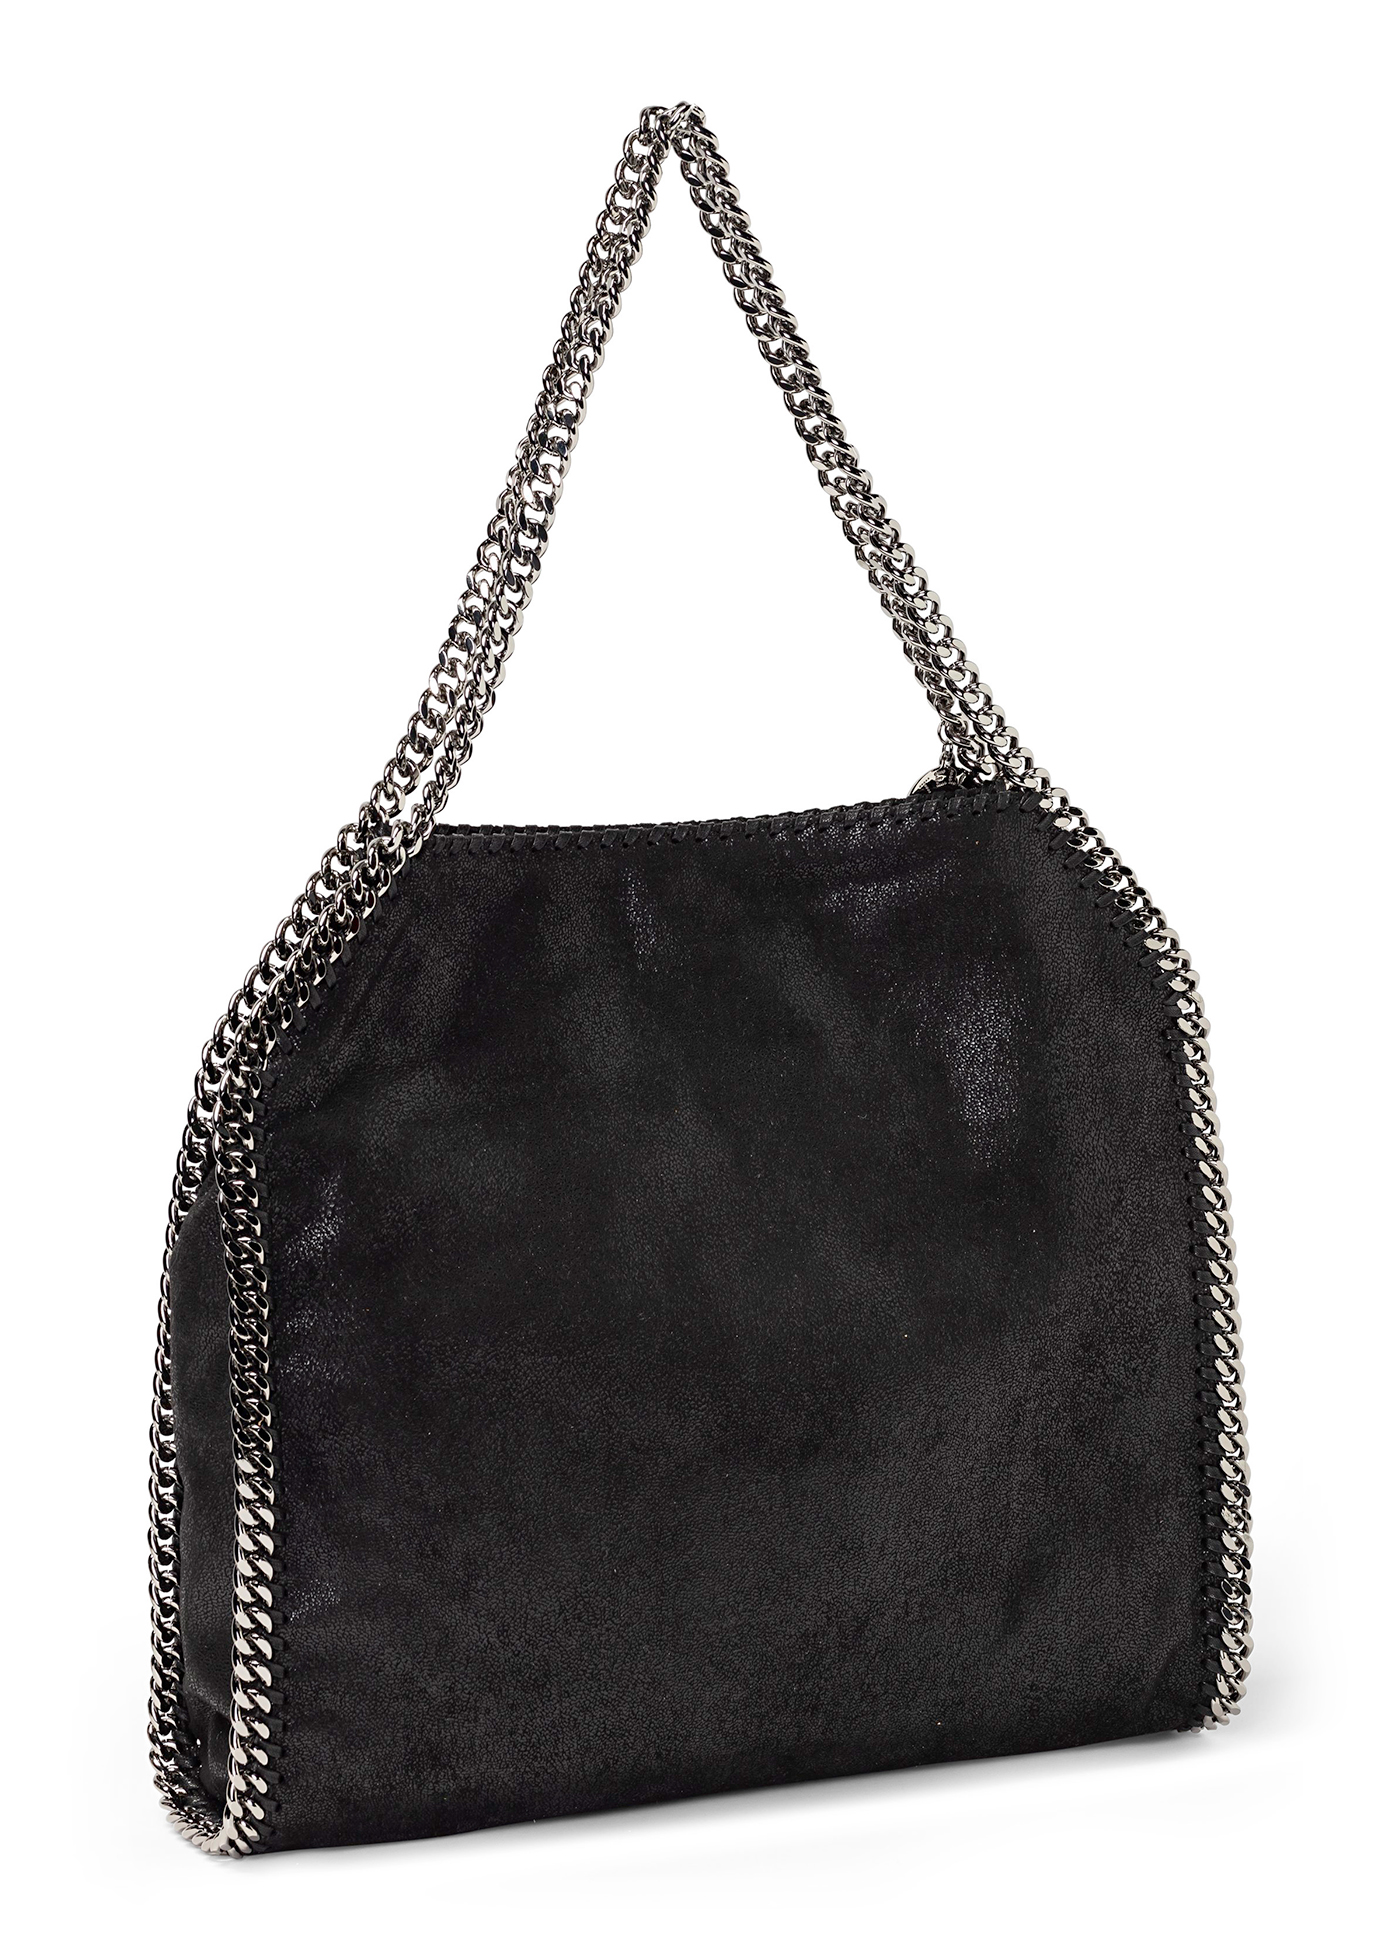 SMALL TOTE FALABELLA image number 1